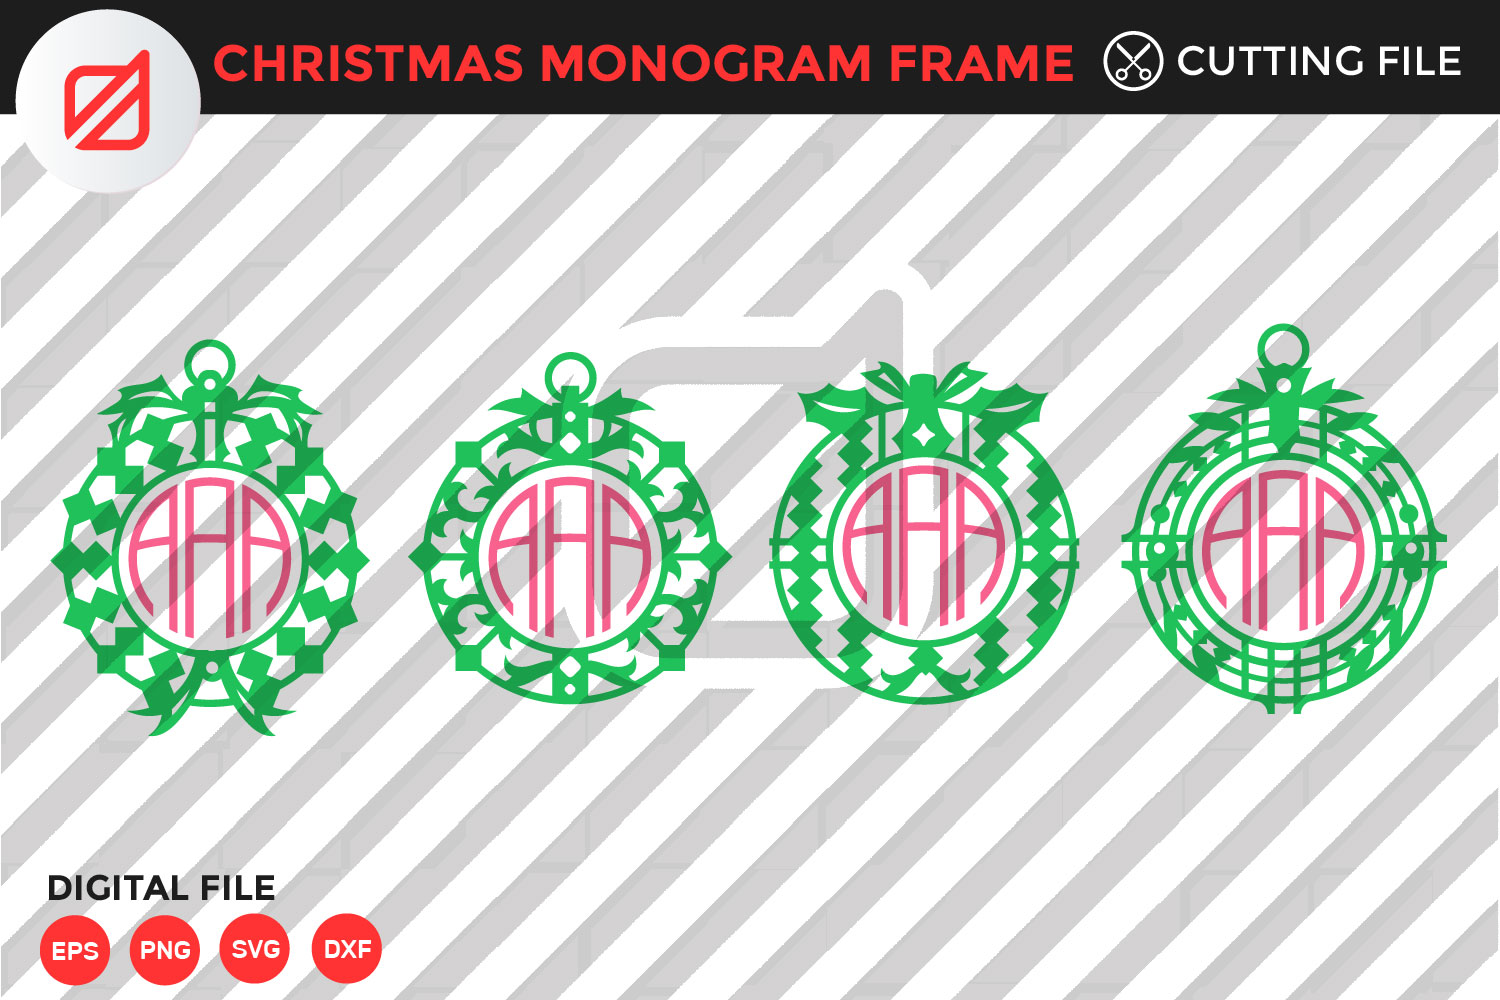 Download Free Christmas Monogram Frame Cutting File Graphic By Illusatrian for Cricut Explore, Silhouette and other cutting machines.